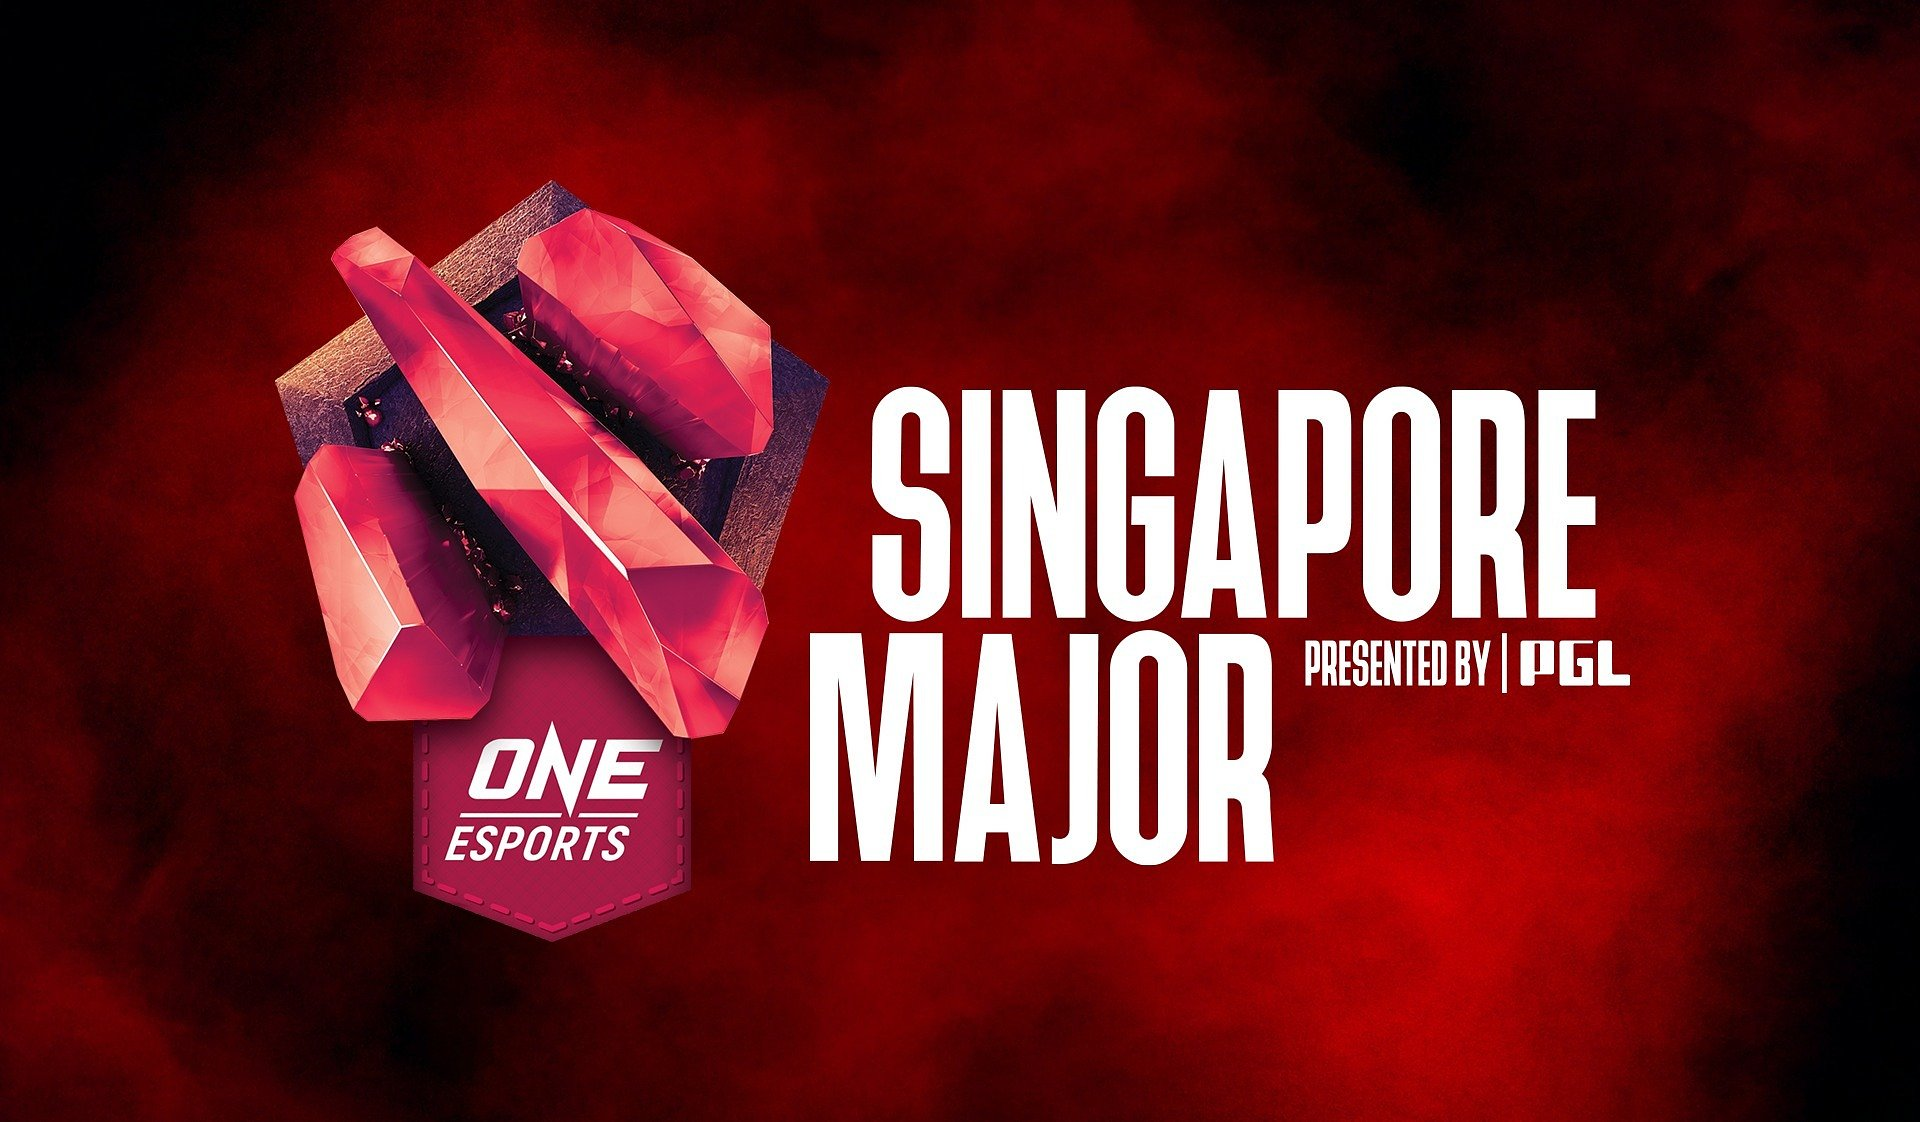 Singapore will host the next DOTA 2 Major